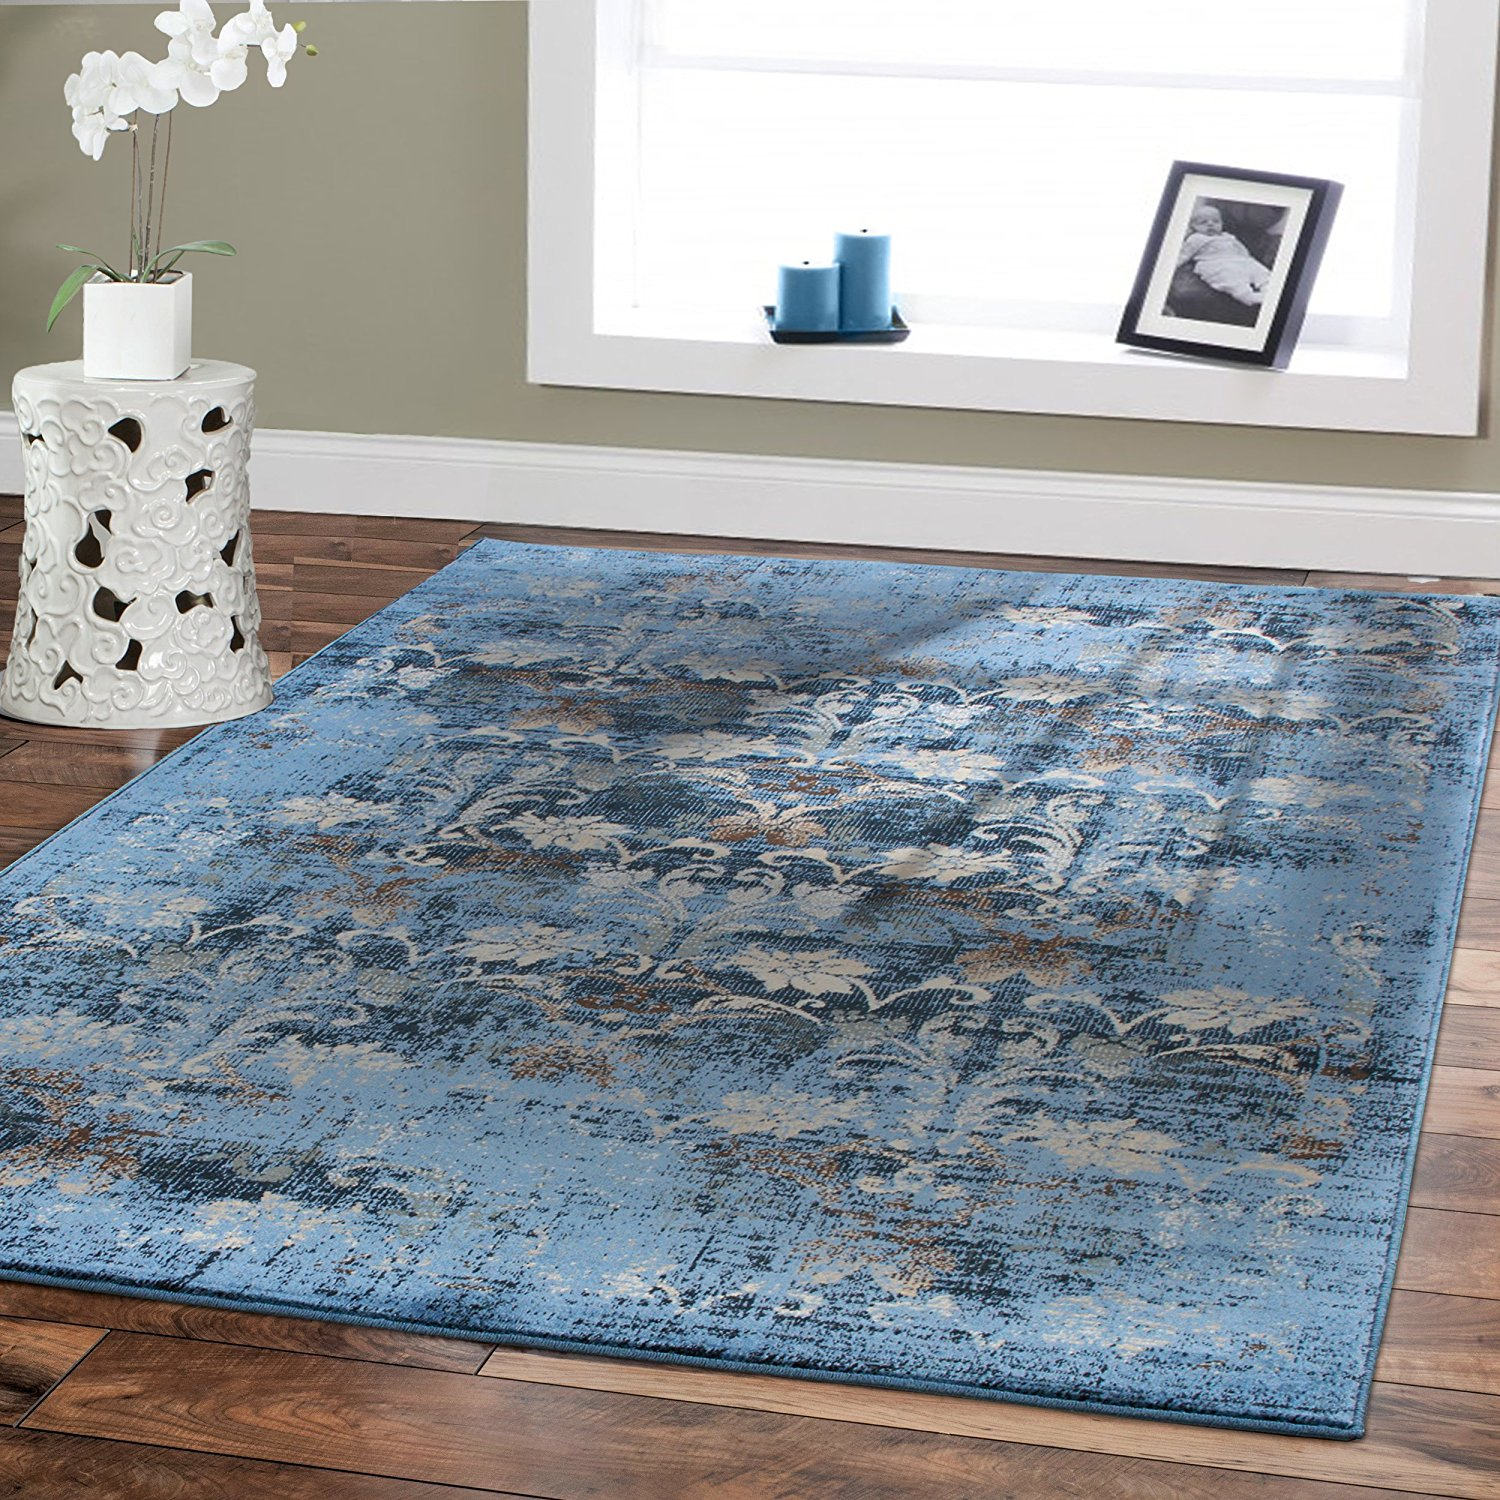 Premium Rugs Large 8x11 Rugs For Living Room 8x10 Area